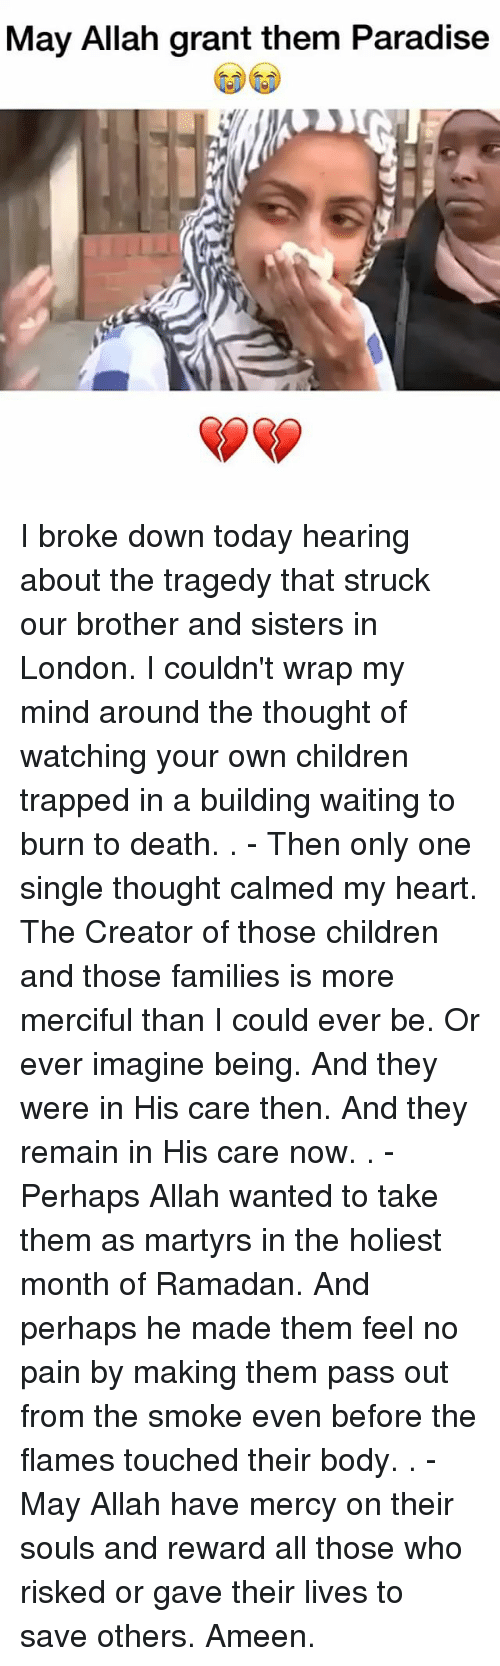 Children, Memes, and Paradise: May Allah grant them Paradise I broke down today hearing about the tragedy that struck our brother and sisters in London. I couldn't wrap my mind around the thought of watching your own children trapped in a building waiting to burn to death. . - Then only one single thought calmed my heart. The Creator of those children and those families is more merciful than I could ever be. Or ever imagine being. And they were in His care then. And they remain in His care now. . - Perhaps Allah wanted to take them as martyrs in the holiest month of Ramadan. And perhaps he made them feel no pain by making them pass out from the smoke even before the flames touched their body. . - May Allah have mercy on their souls and reward all those who risked or gave their lives to save others. Ameen.